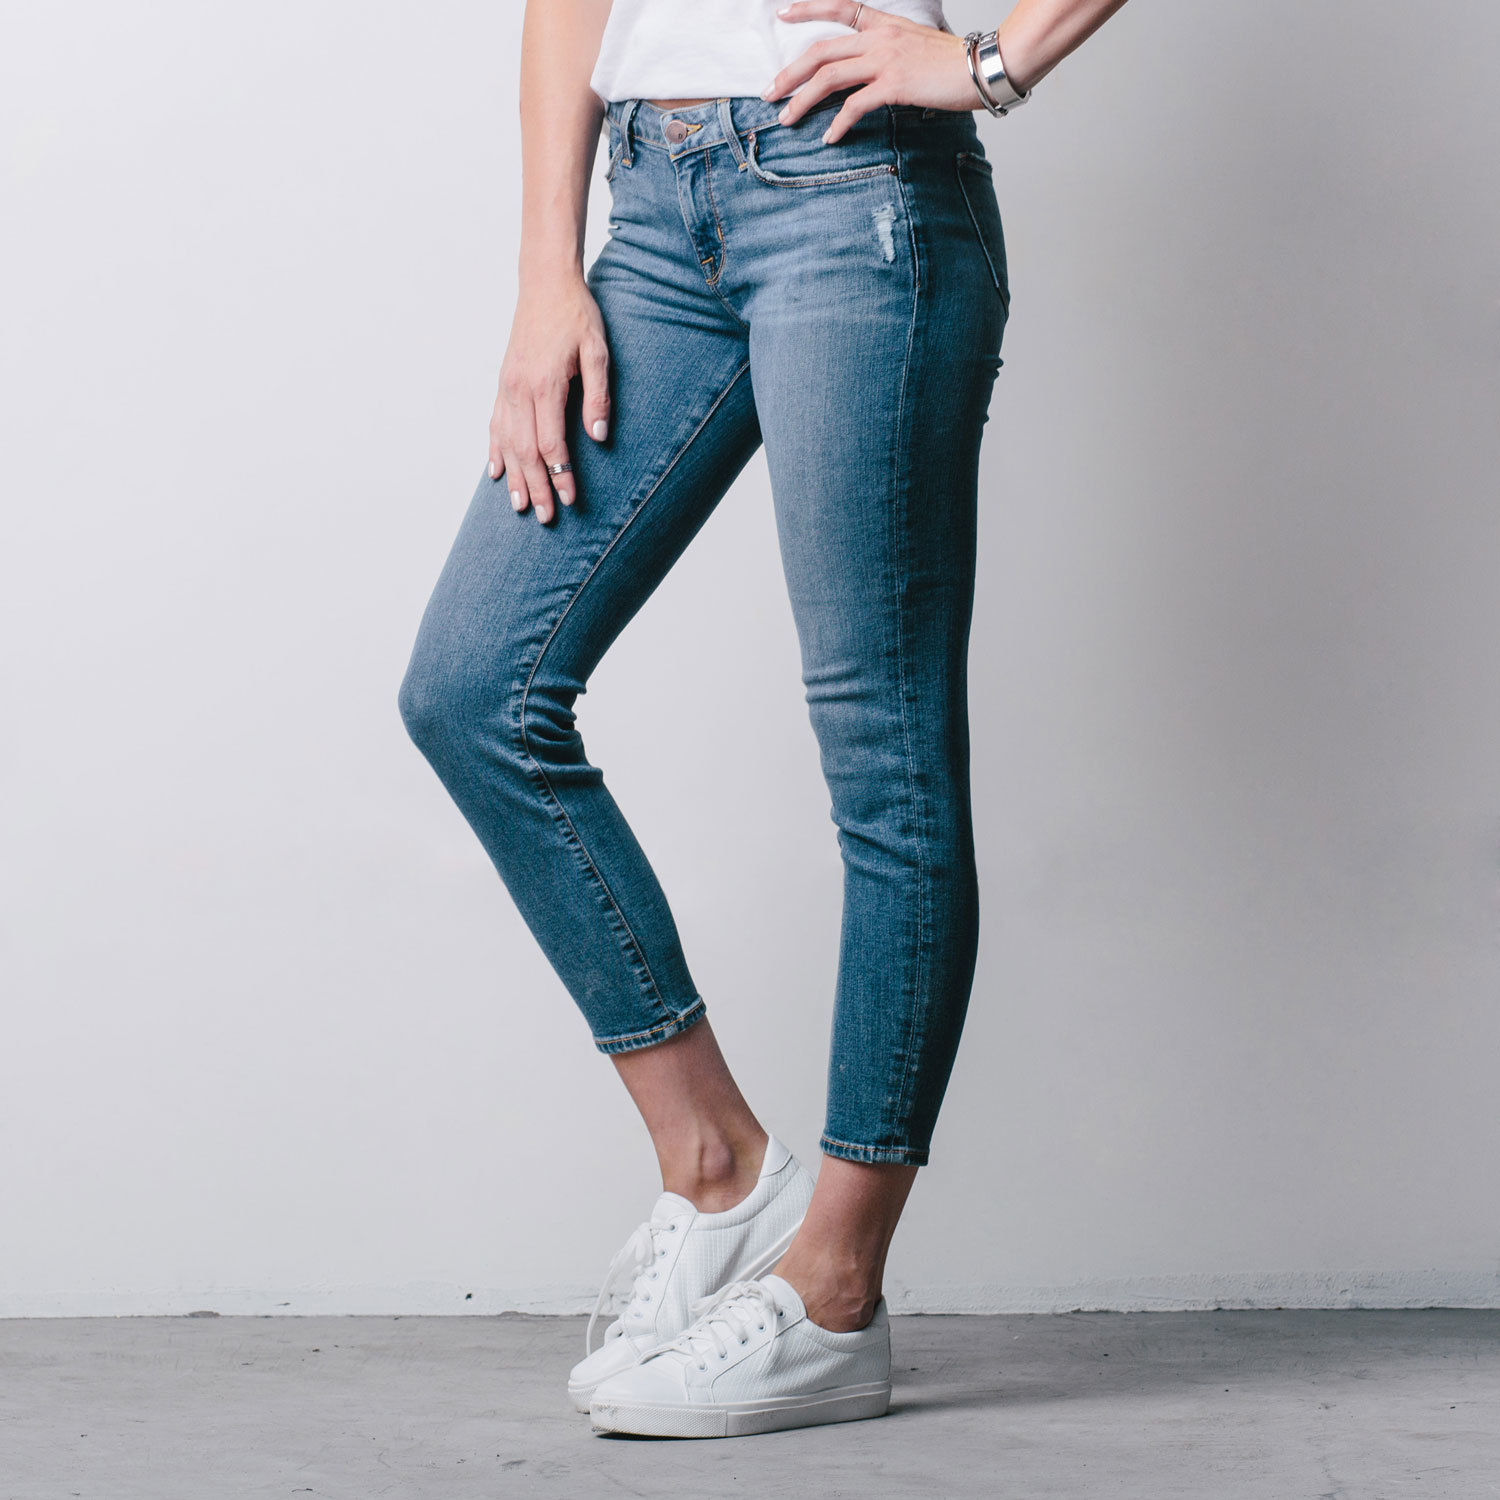 If you're into distressed—but not stressed—vibes, we've got all the different levels of distressing to offer in cropped jeans, cropped flare jeans, cropped skinny jeans, white cropped jeans, wide leg cropped jeans, black cropped jeans, petite cropped jeans, cropped boyfriend jeans, cropped denim jeans and cropped kick flare jeans.